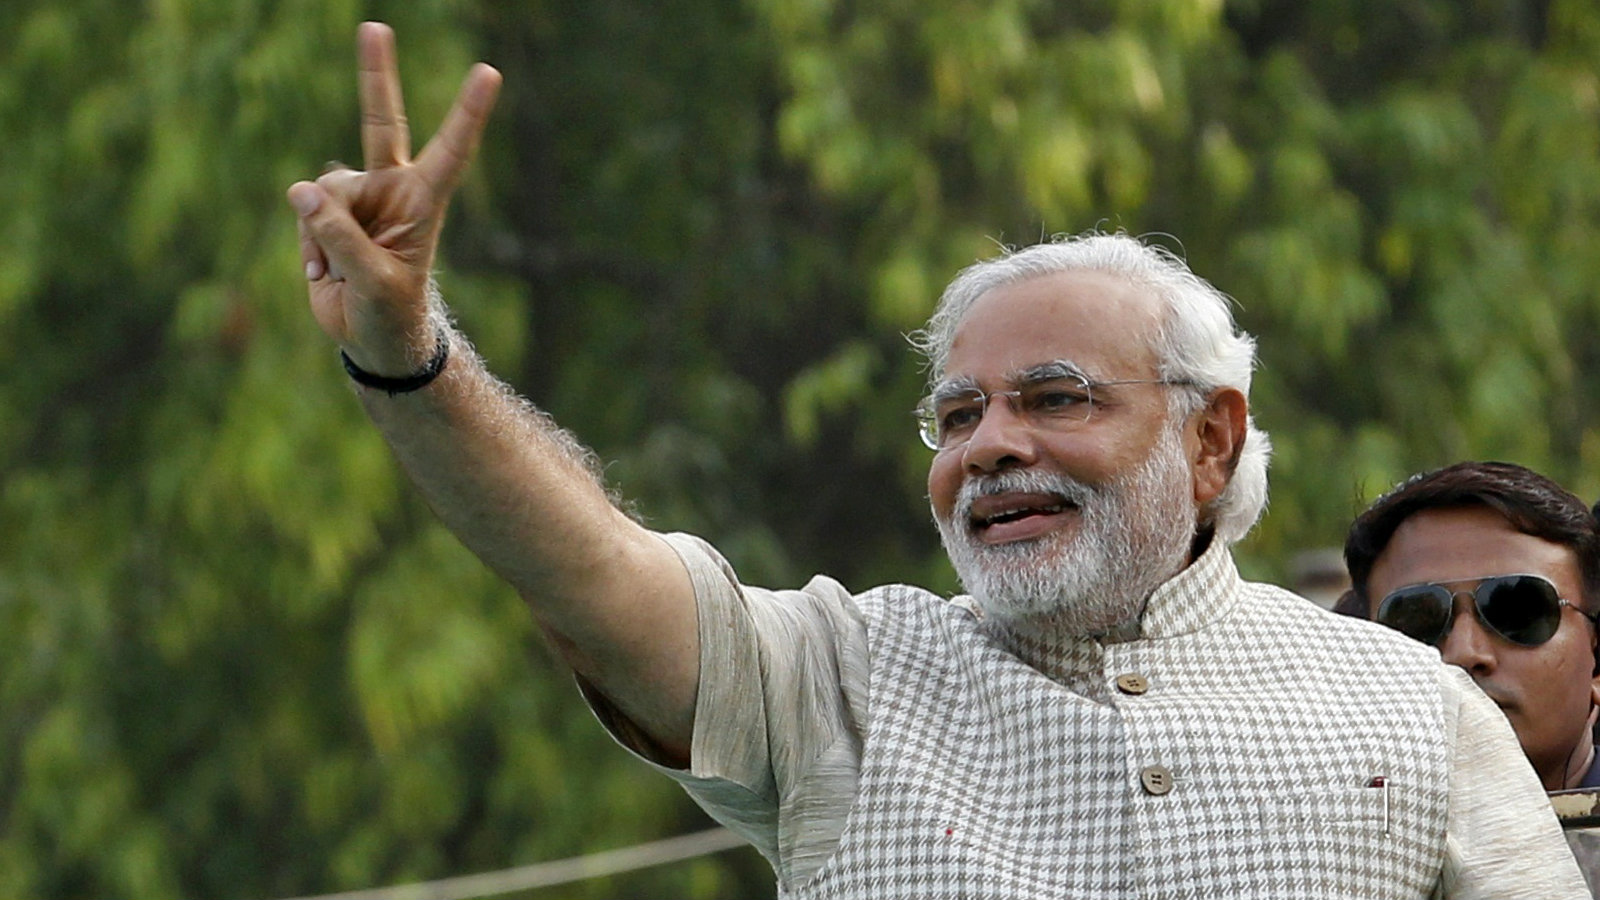 Prime minister Narendra Modi will seek a second term in 2019.